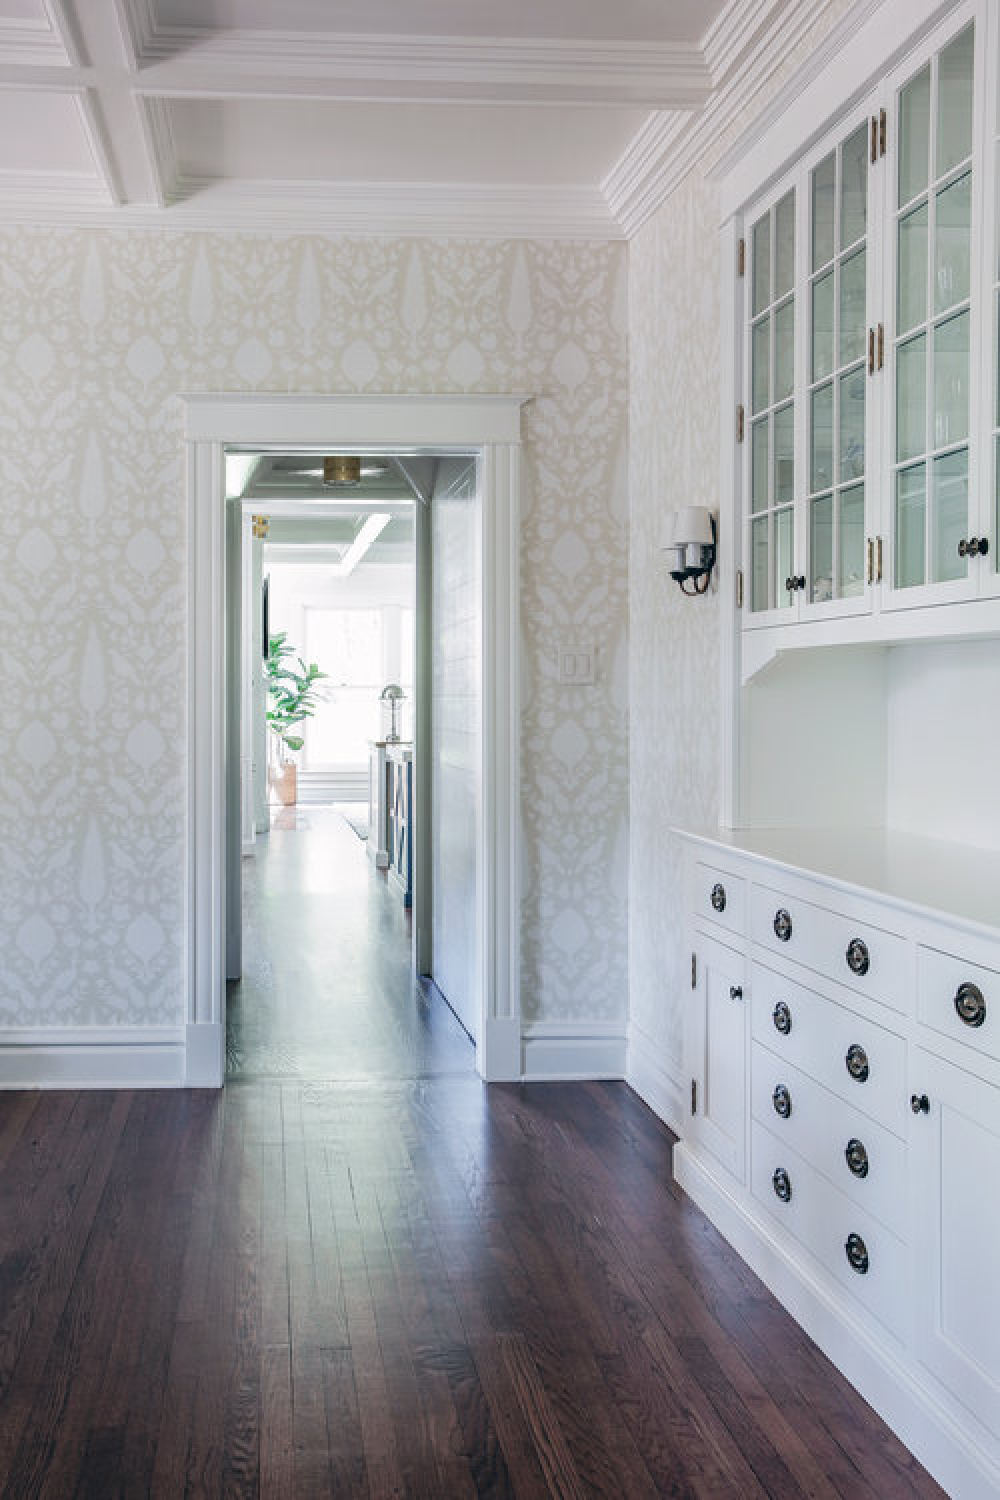 Beautiful muted traditional style wallpaper in a dining room with classic builtins - Edward Deegan Architects.